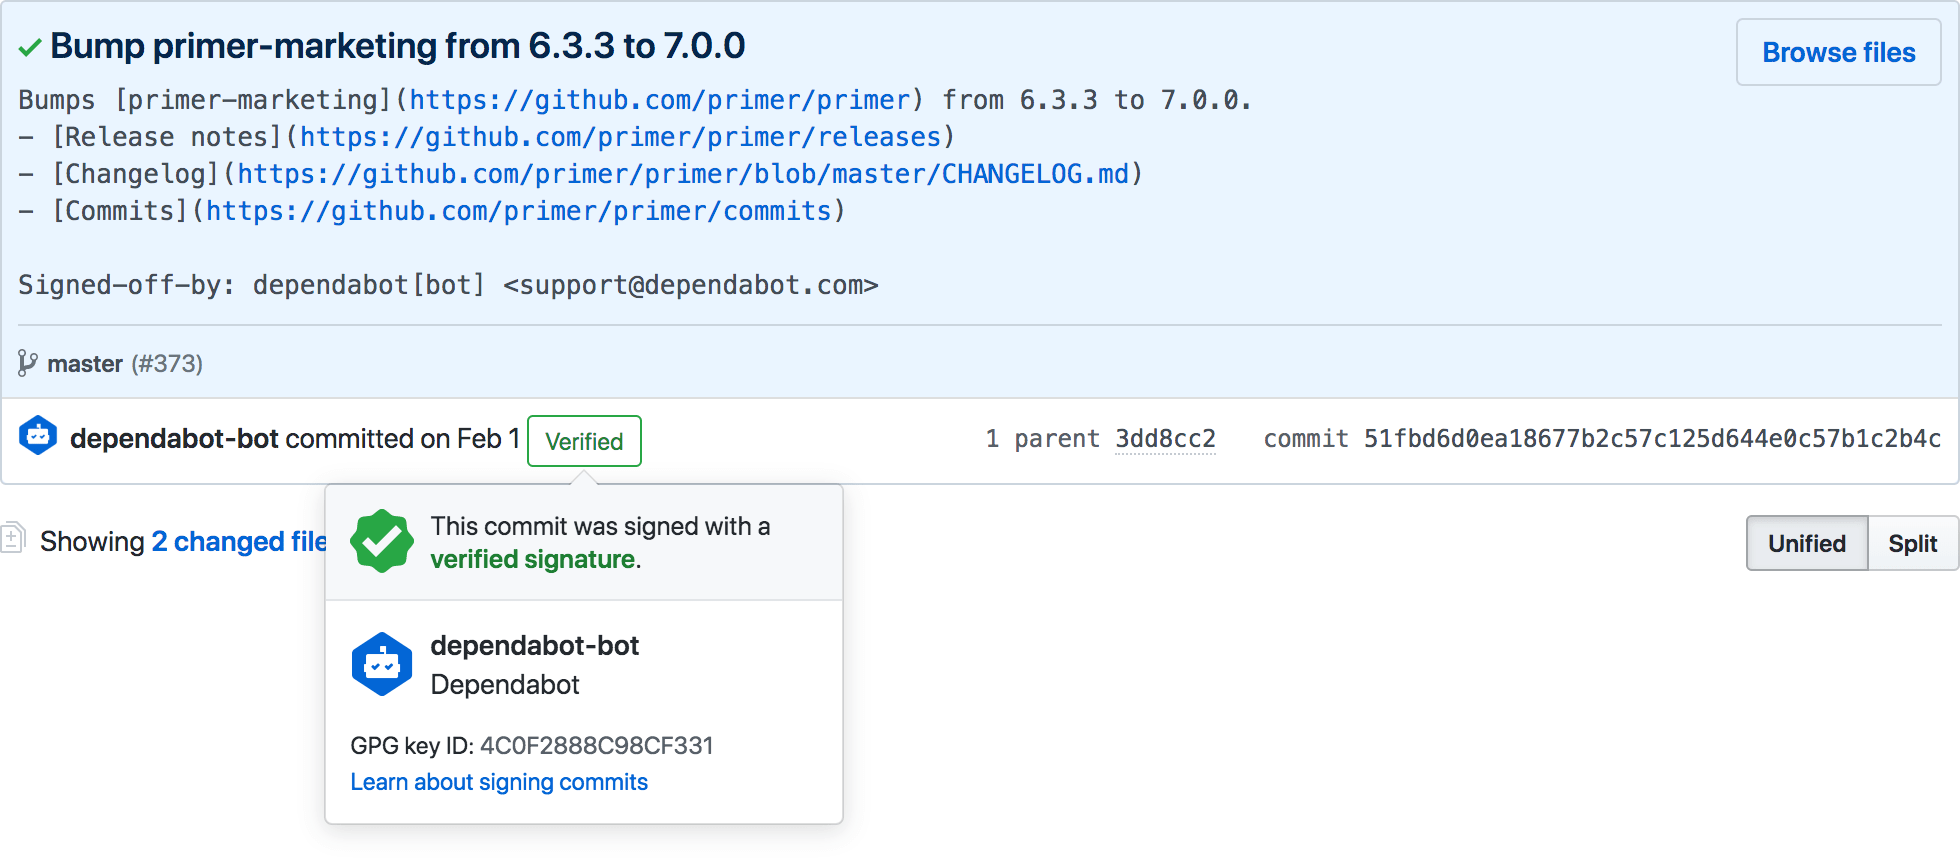 The image Badge showing a bot-signed commit for an open source project.